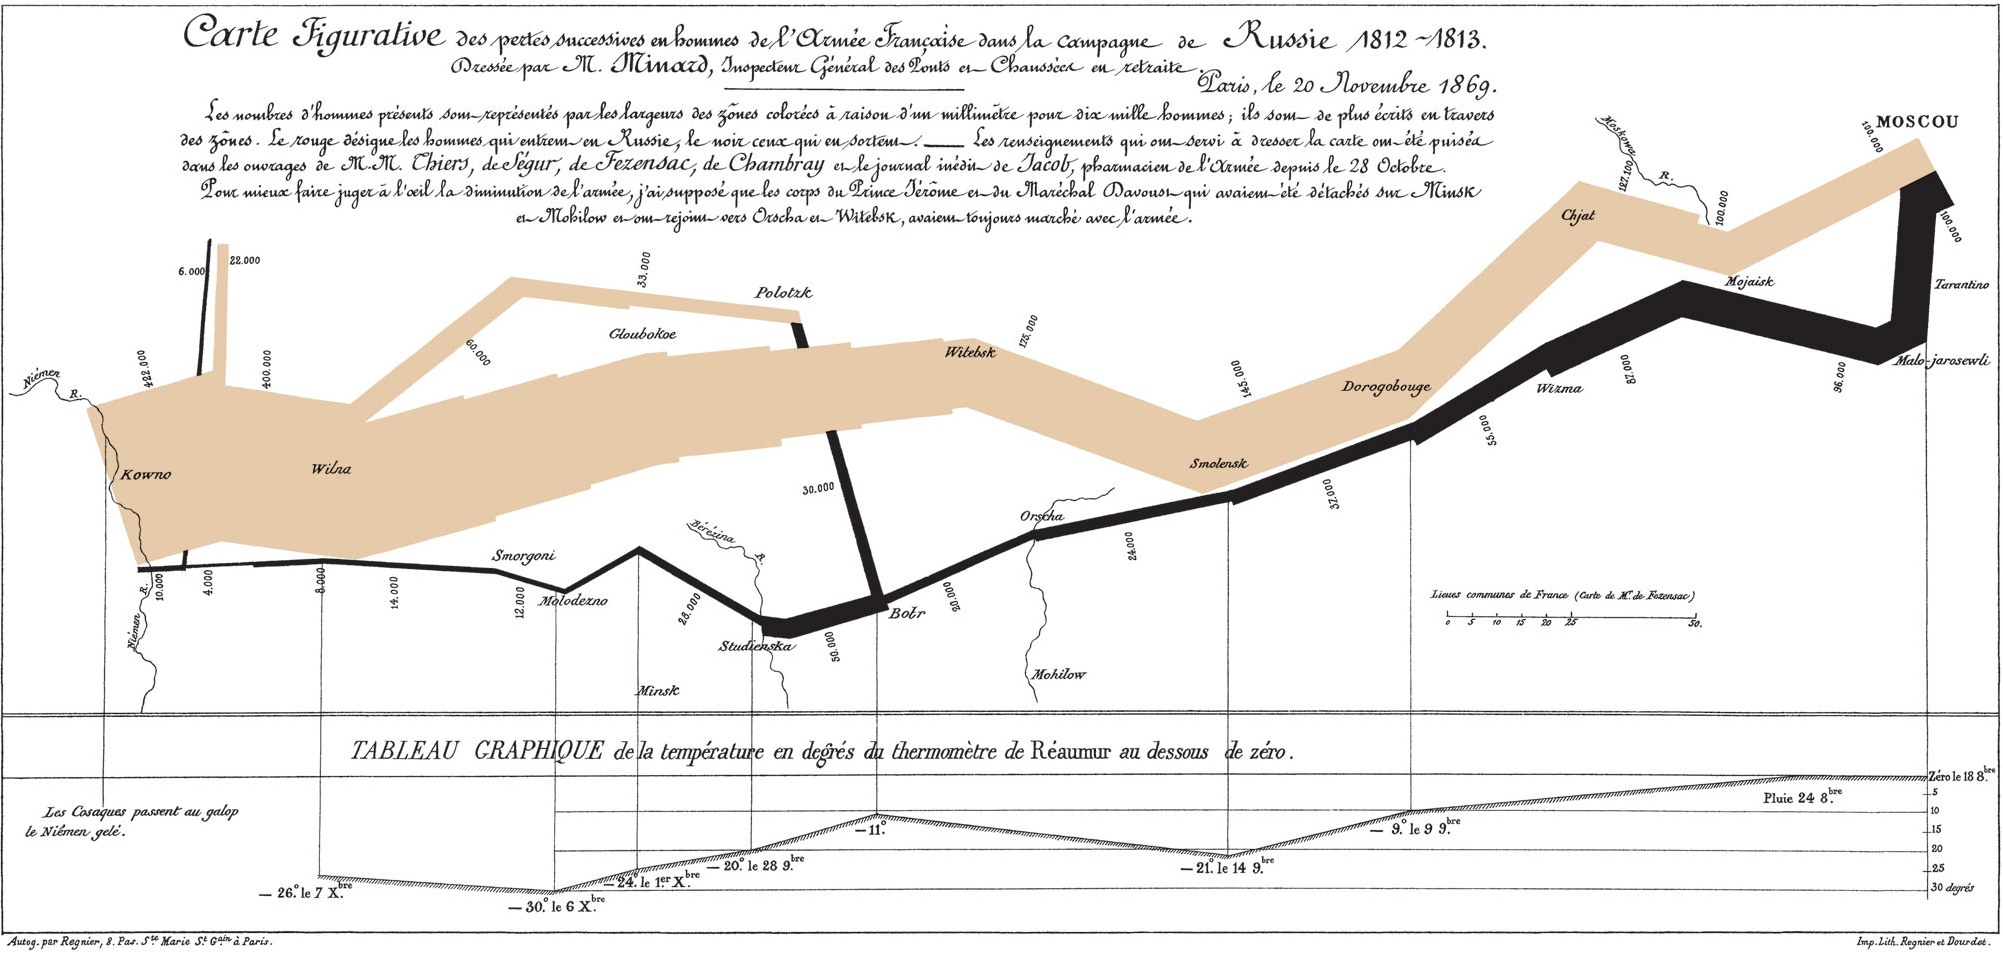 Minard's march – a hallmark visualization, rightly so?